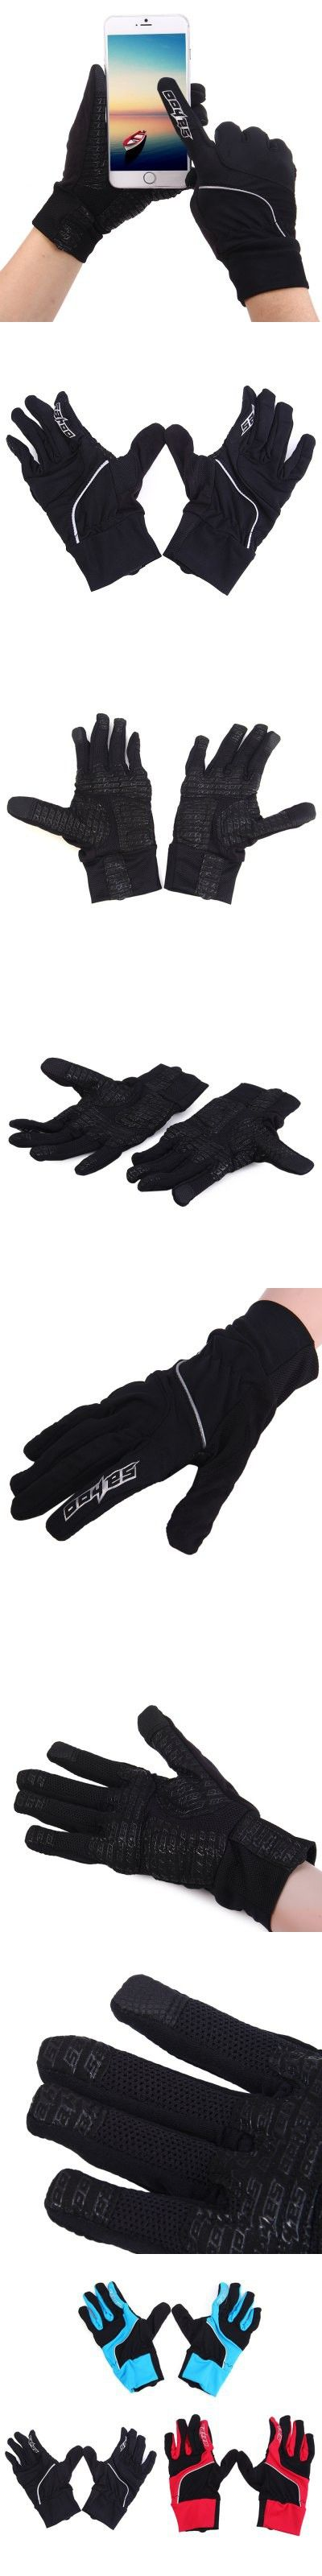 Cycling Gloves | 1 Pair SAHOO Touch Screen Full Finger Gloves $11.90